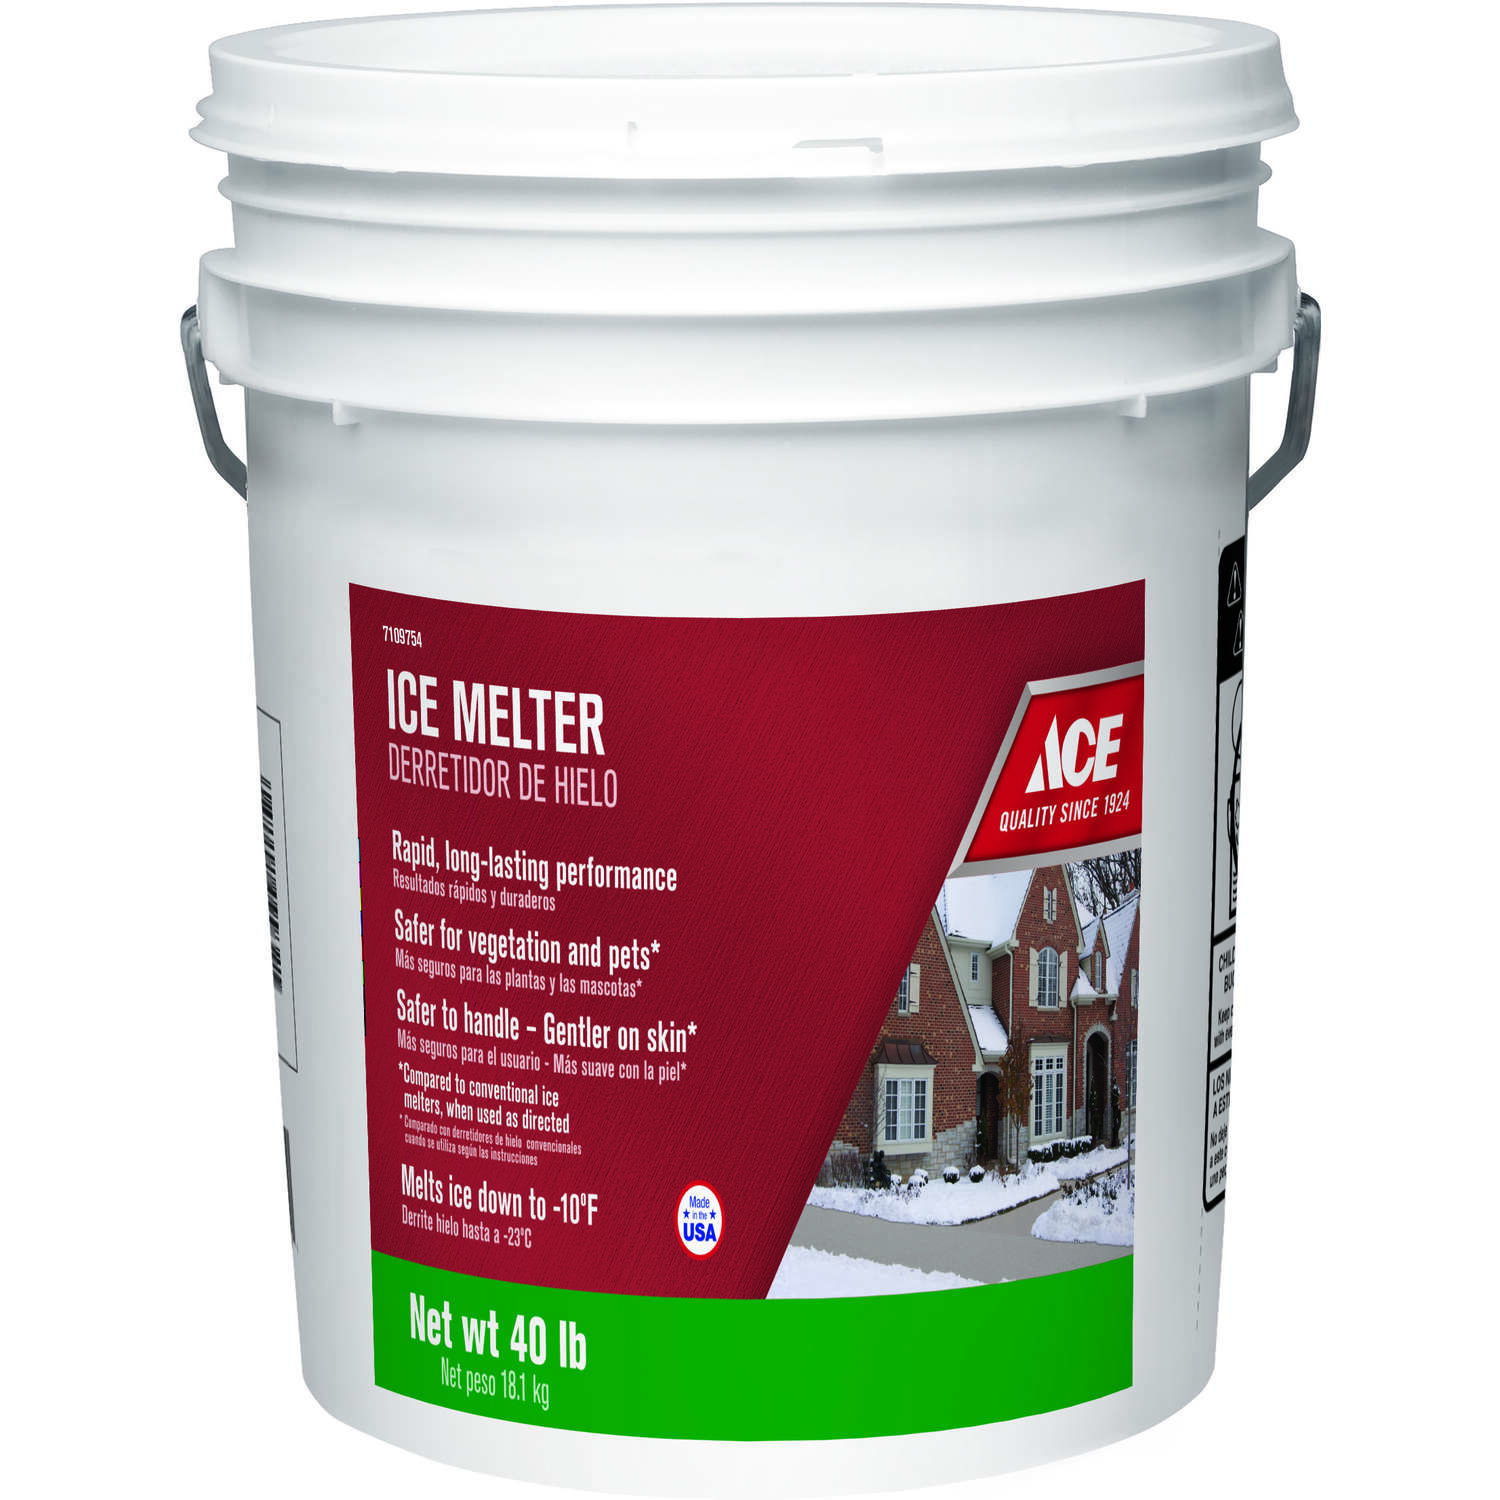 Ace Sodium Chloride and Magnesium Chloride Granule Ice Melt 40 lb.